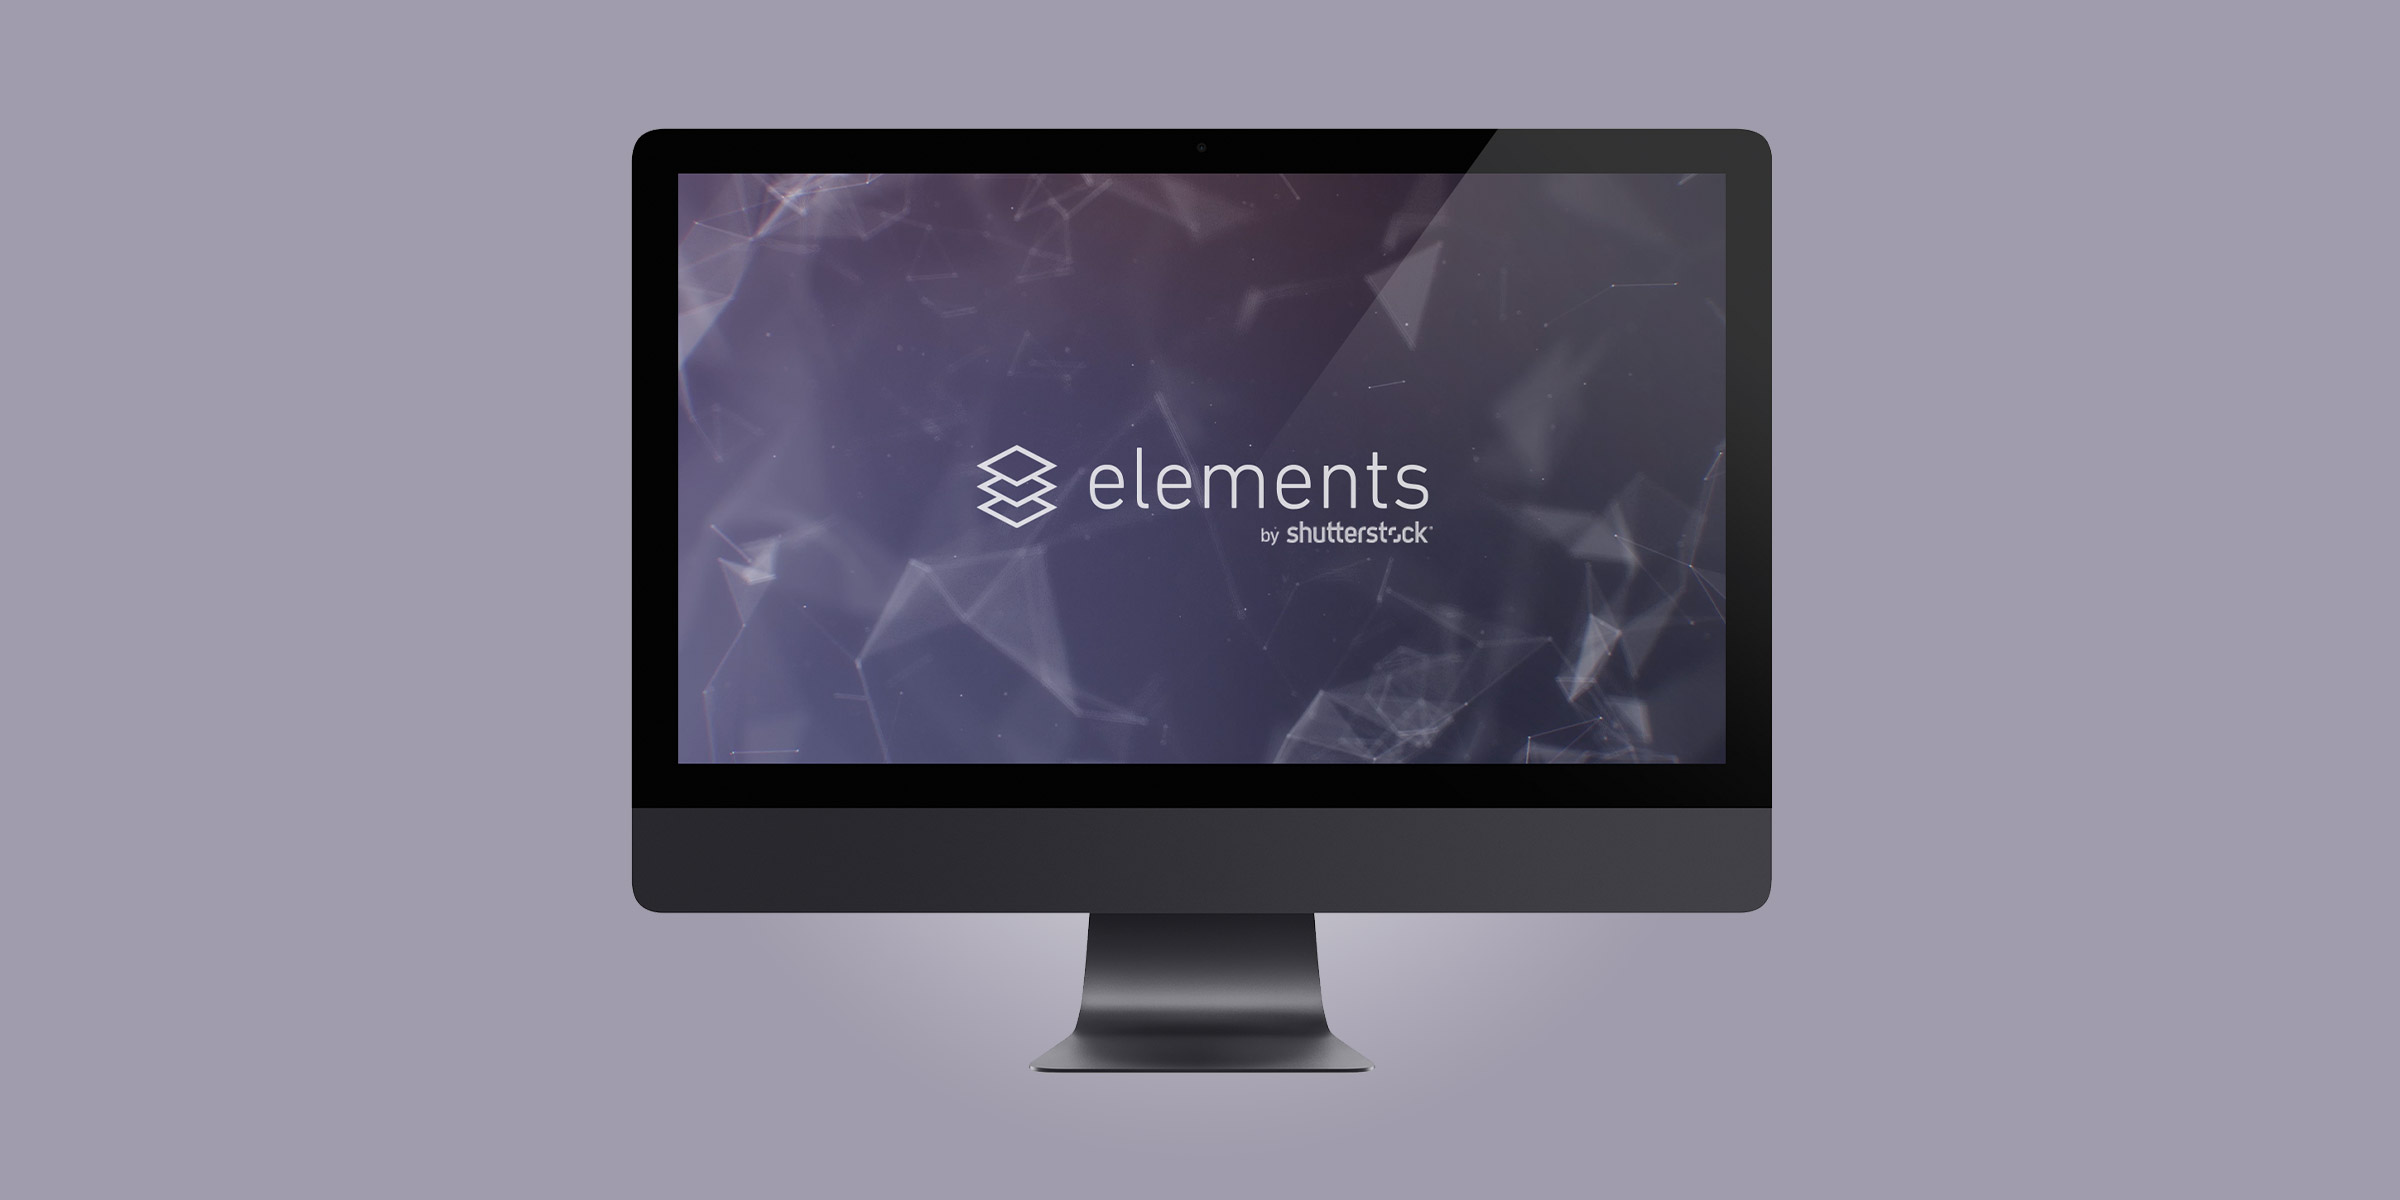 Header image for the Shutterstock Elements project, representing an iMac display on a heather background, with the Elements by Shutterstock logo on screen.